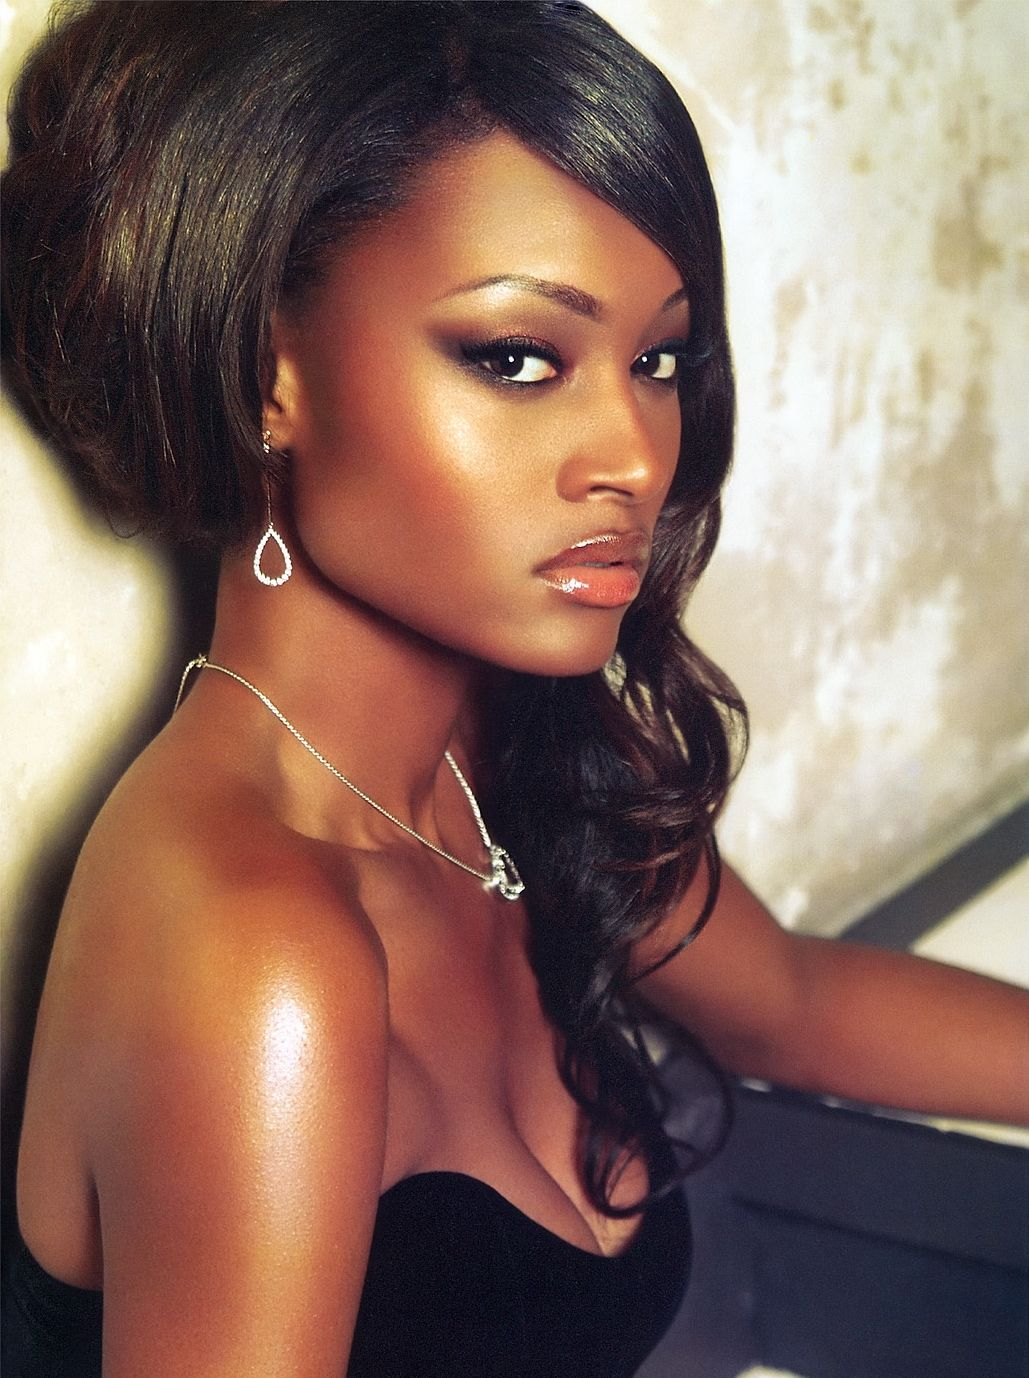 Danielle Evans ANTM winner. She should really be a top model. This girl is gorgeous